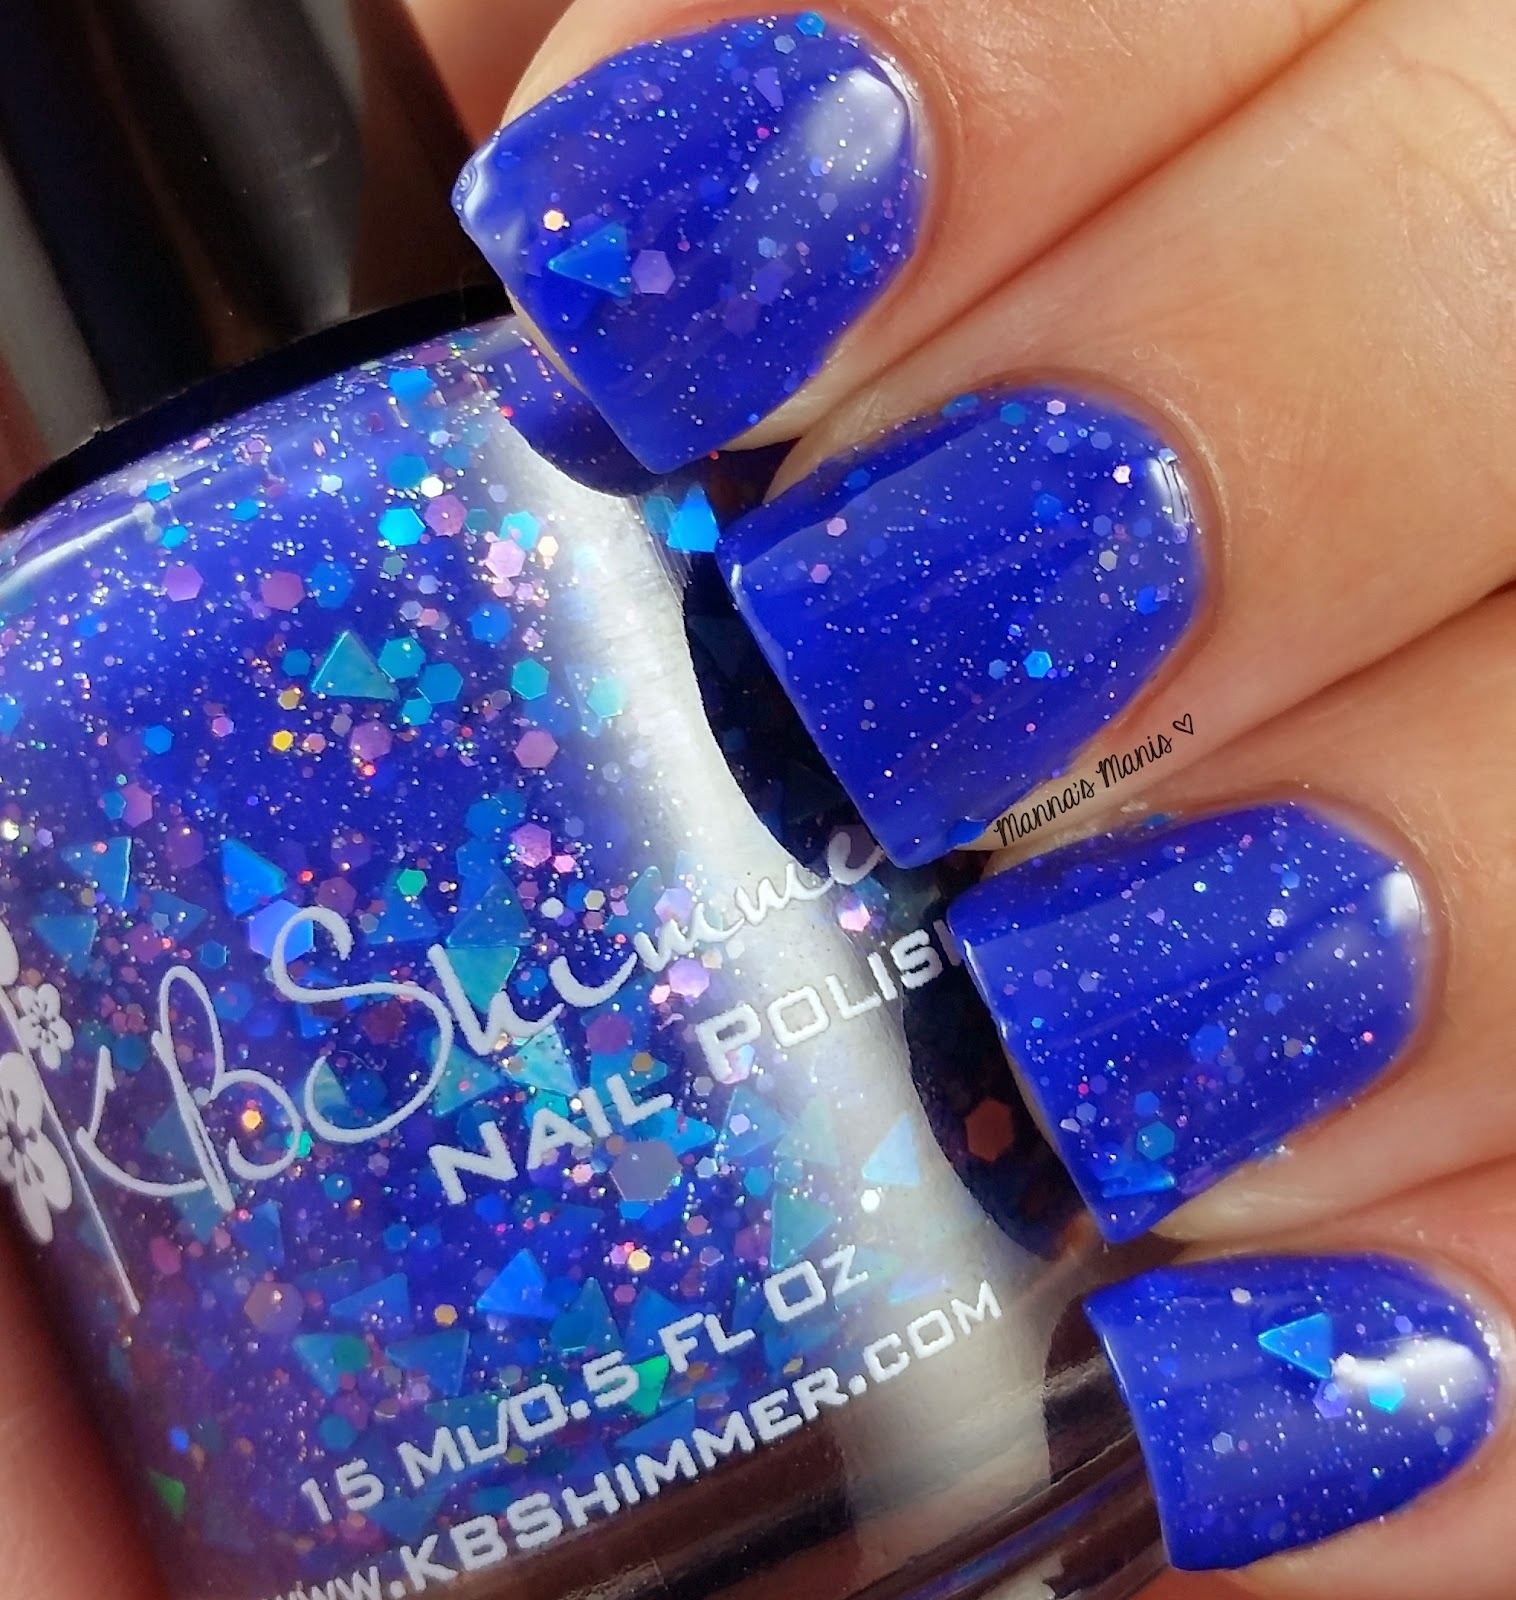 kbshimmer fallen angle, a blue jelly nail polish